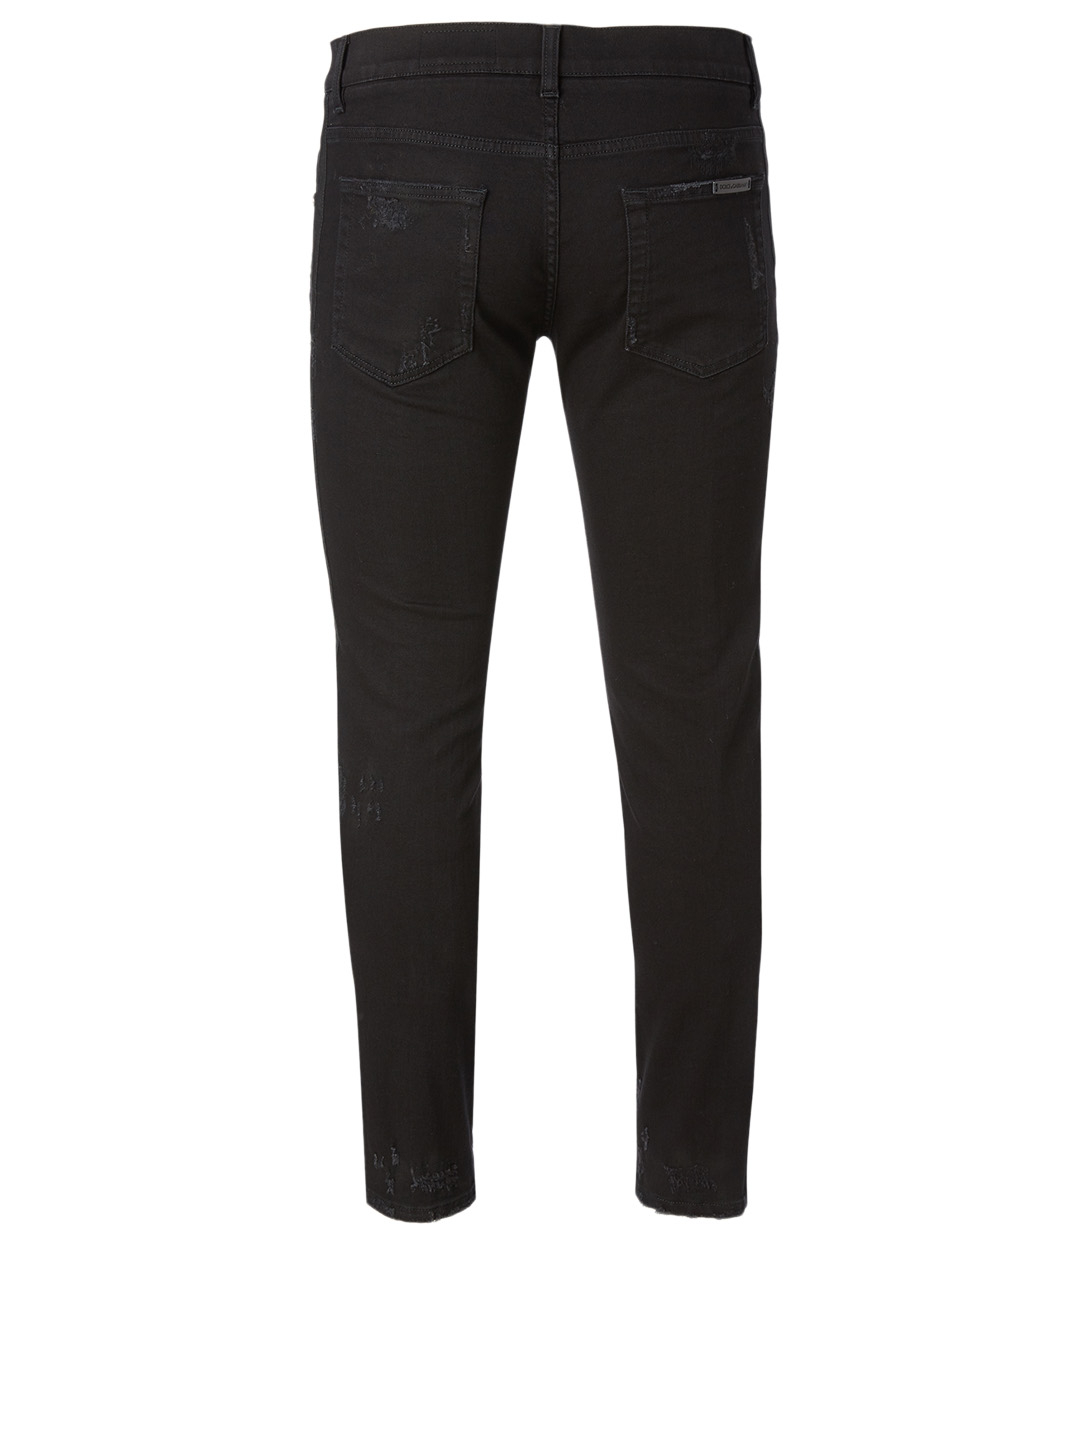 DOLCE & GABBANA Cotton Stretch Jeans With Heart Patch Men's Black